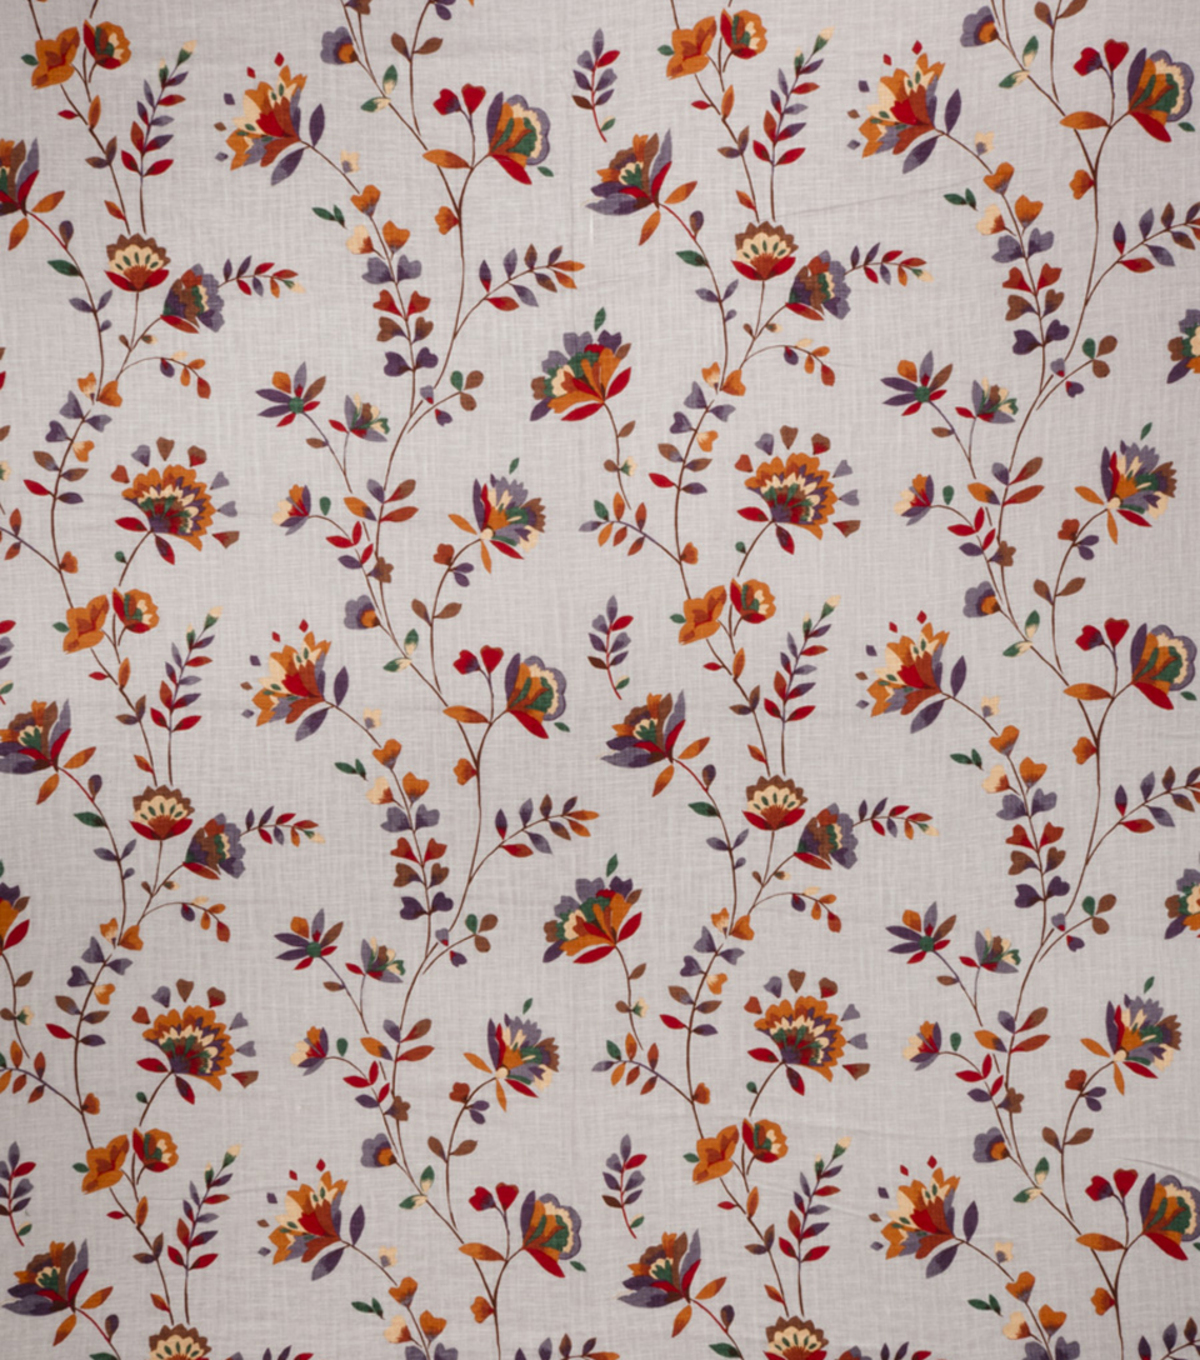 Home Decor 8\u0022x8\u0022 Fabric Swatch-Eaton Square Sheila Cinnamon & Stone